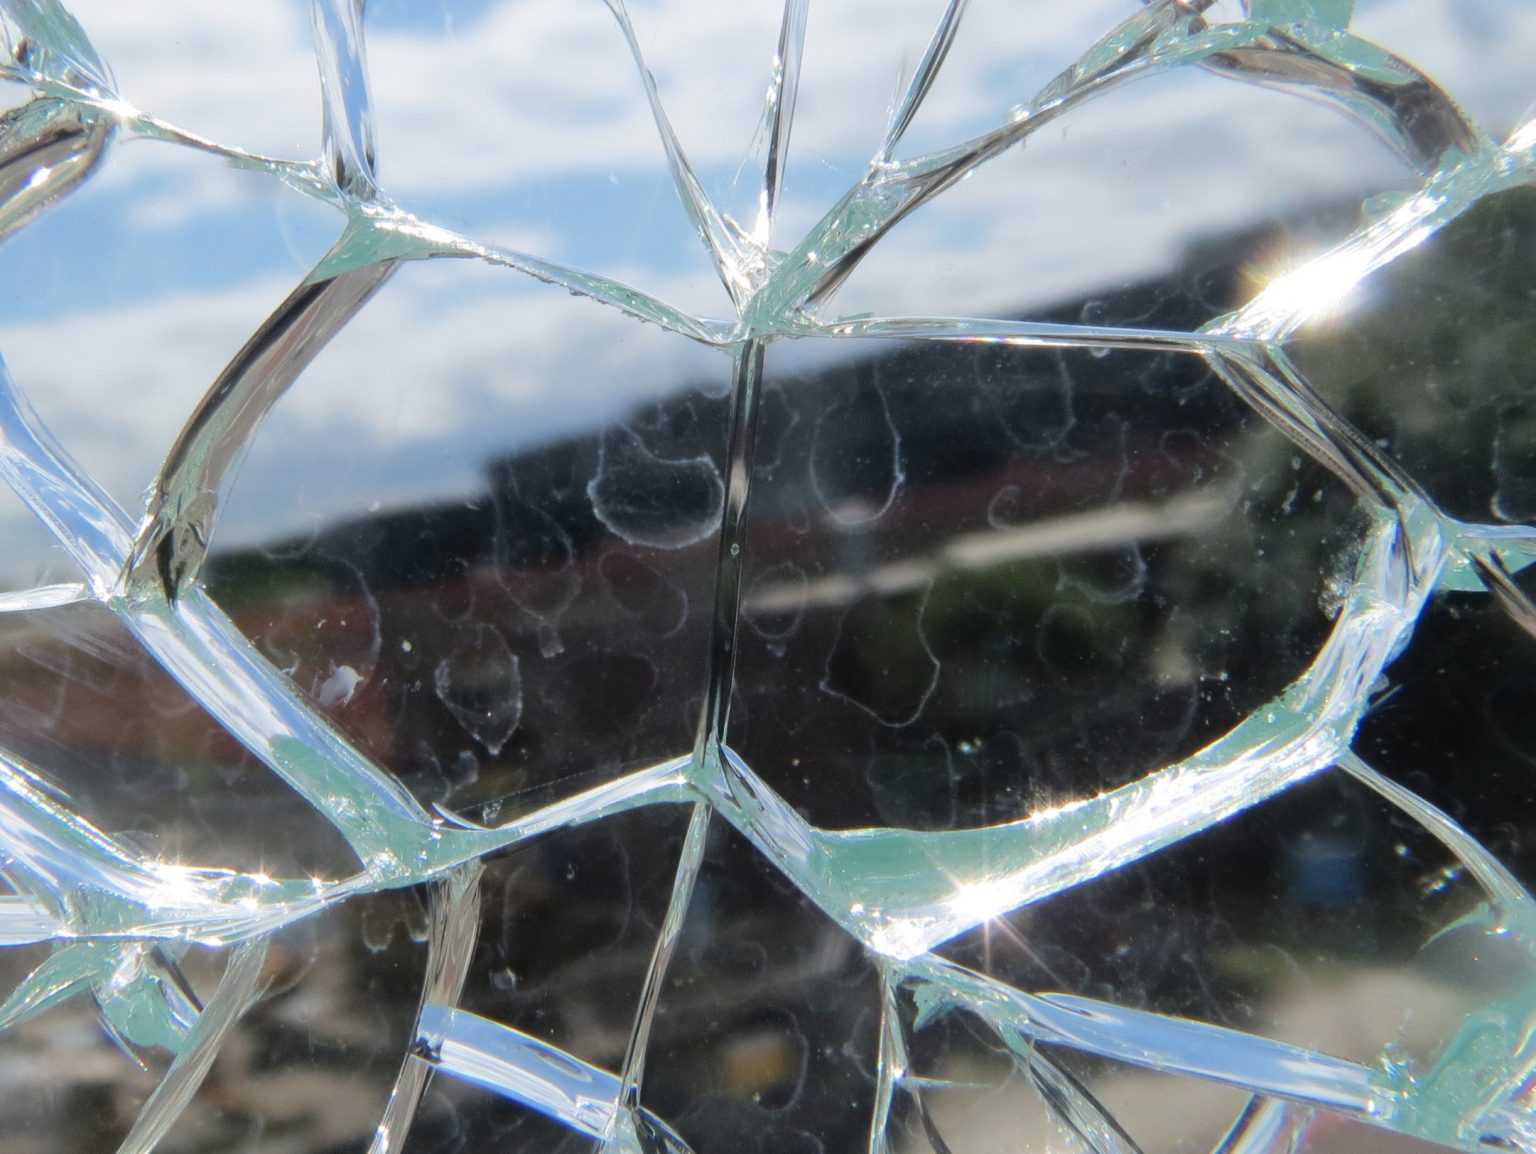 THE GLASS 'BUTTERFLY EFFECT' – ADVICE ON THE RISK OF GLASS FAILURE DUE TO NICKEL SULPHIDE INCLUSIONS